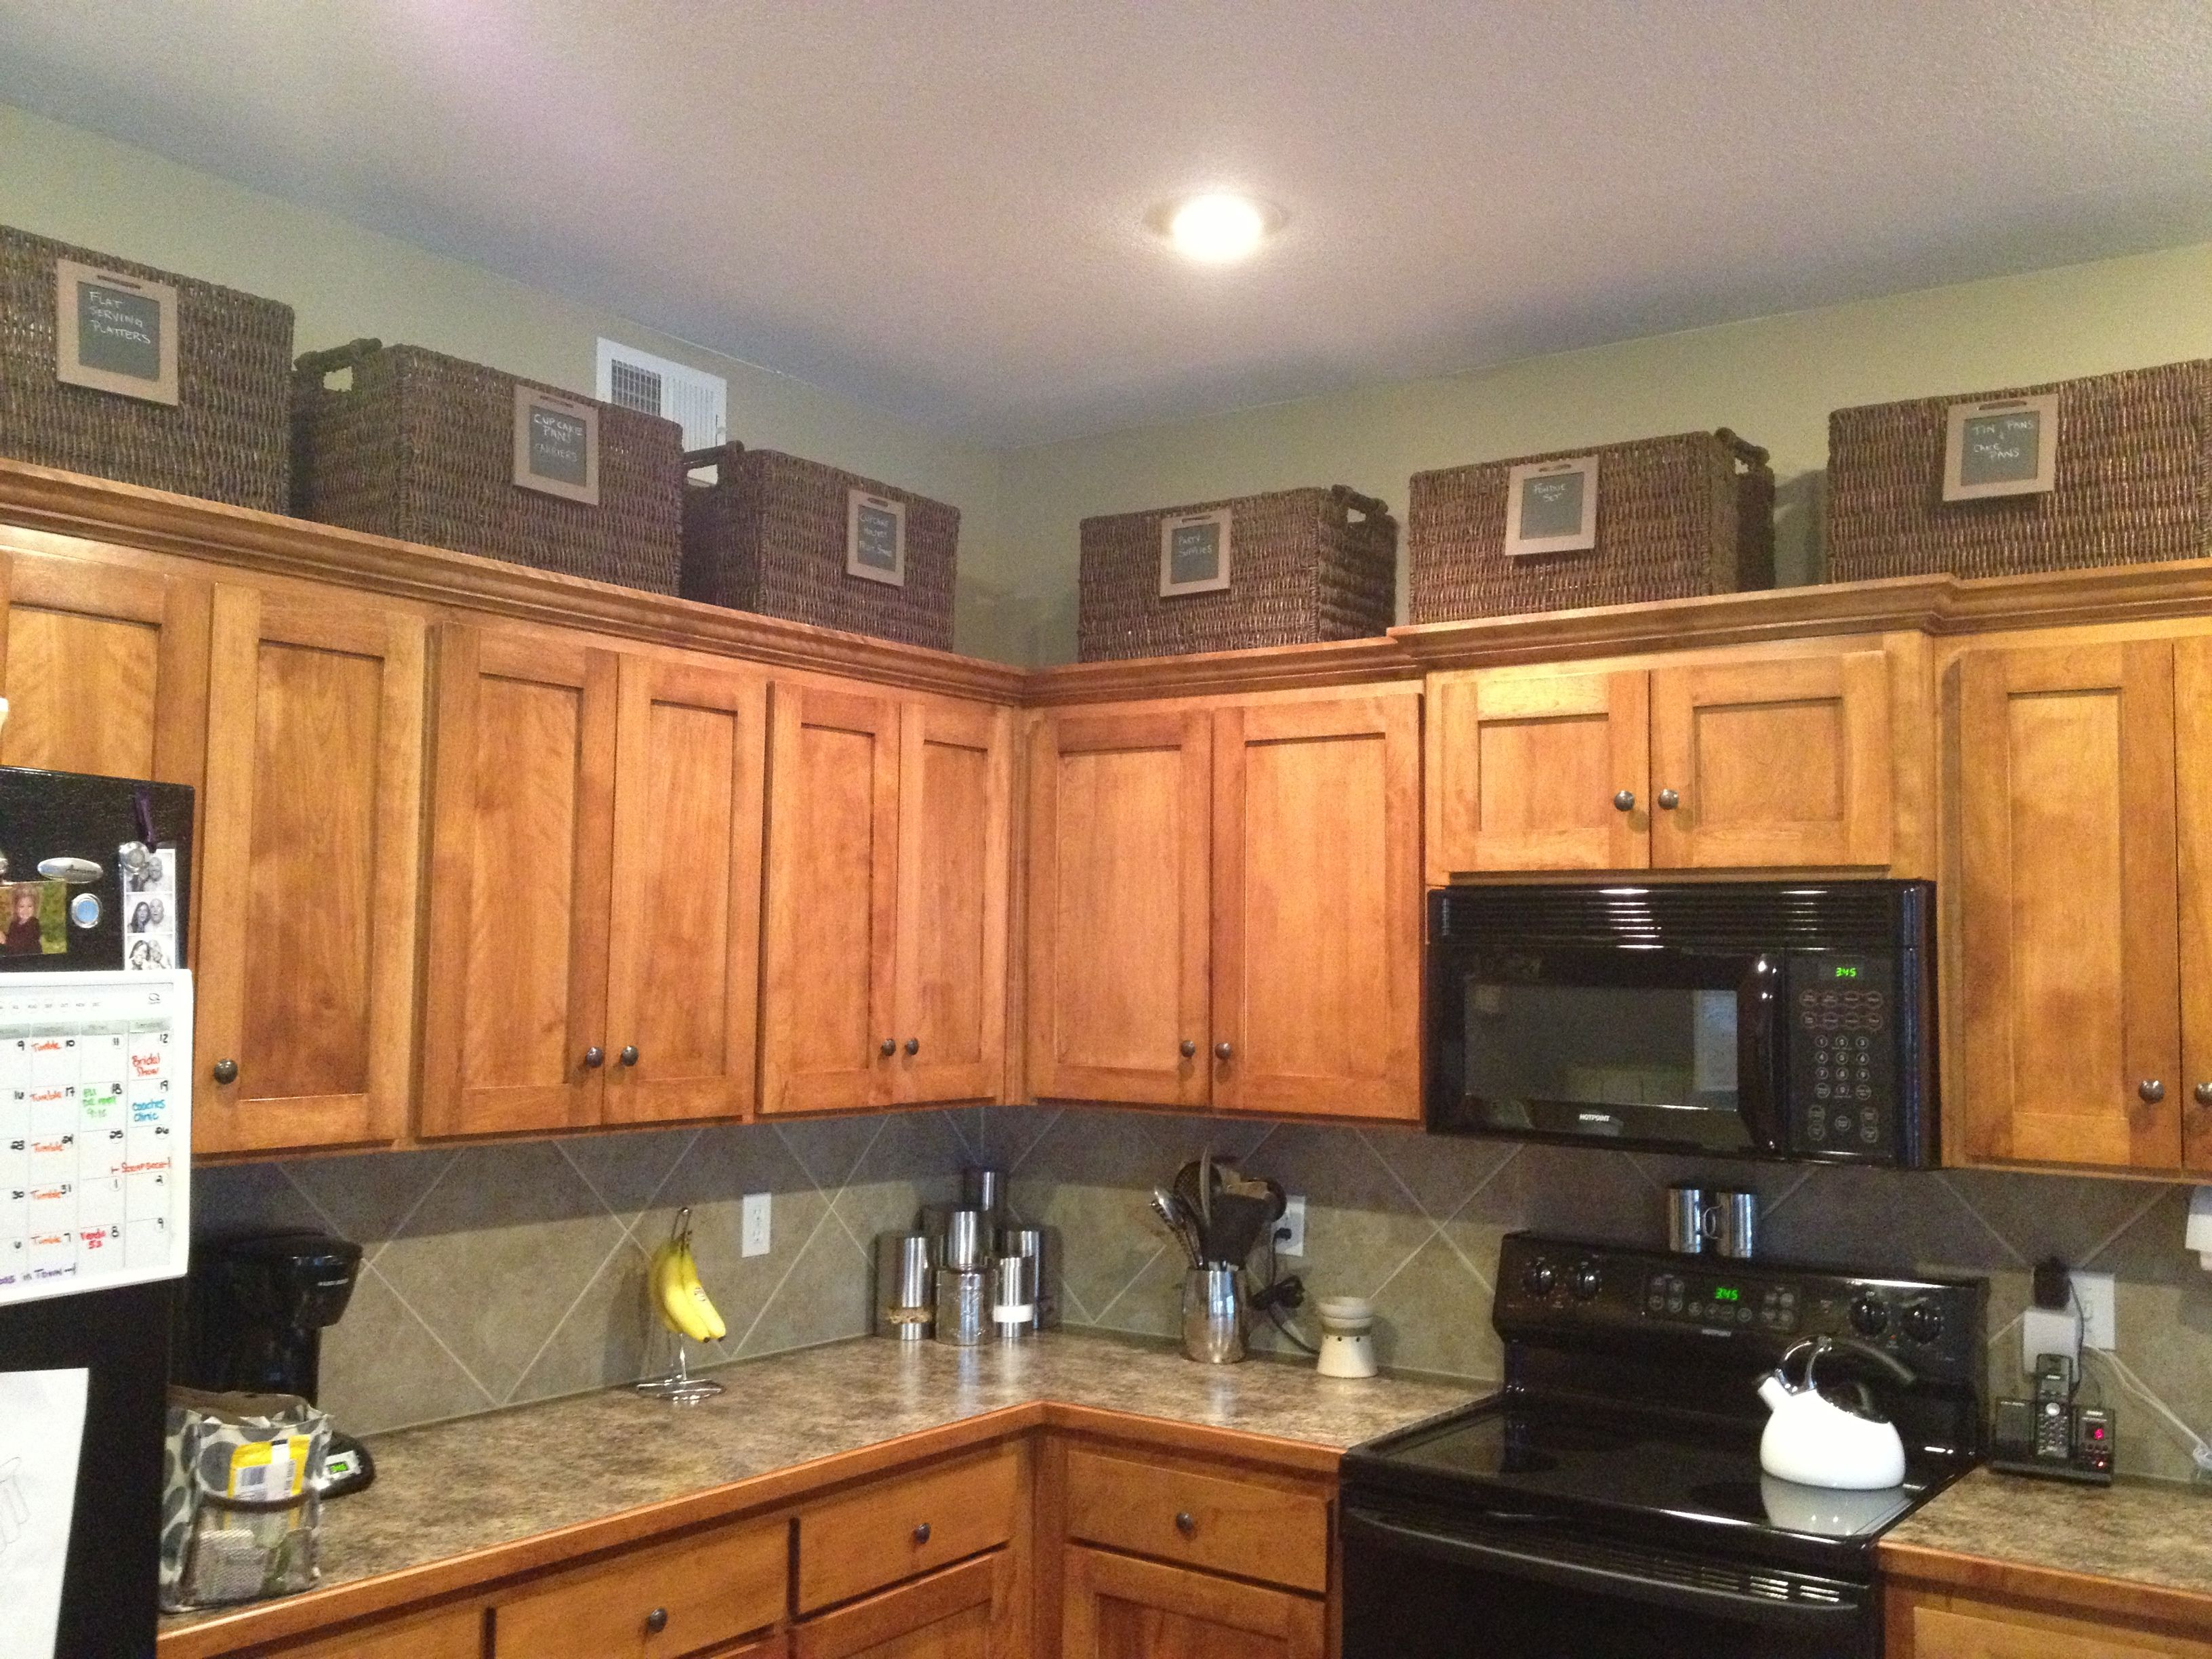 Baskets Above Cabinets For More Storage Above Kitchen Cabinets Kitchen Cabinets Decor Kitchen Cabinet Storage